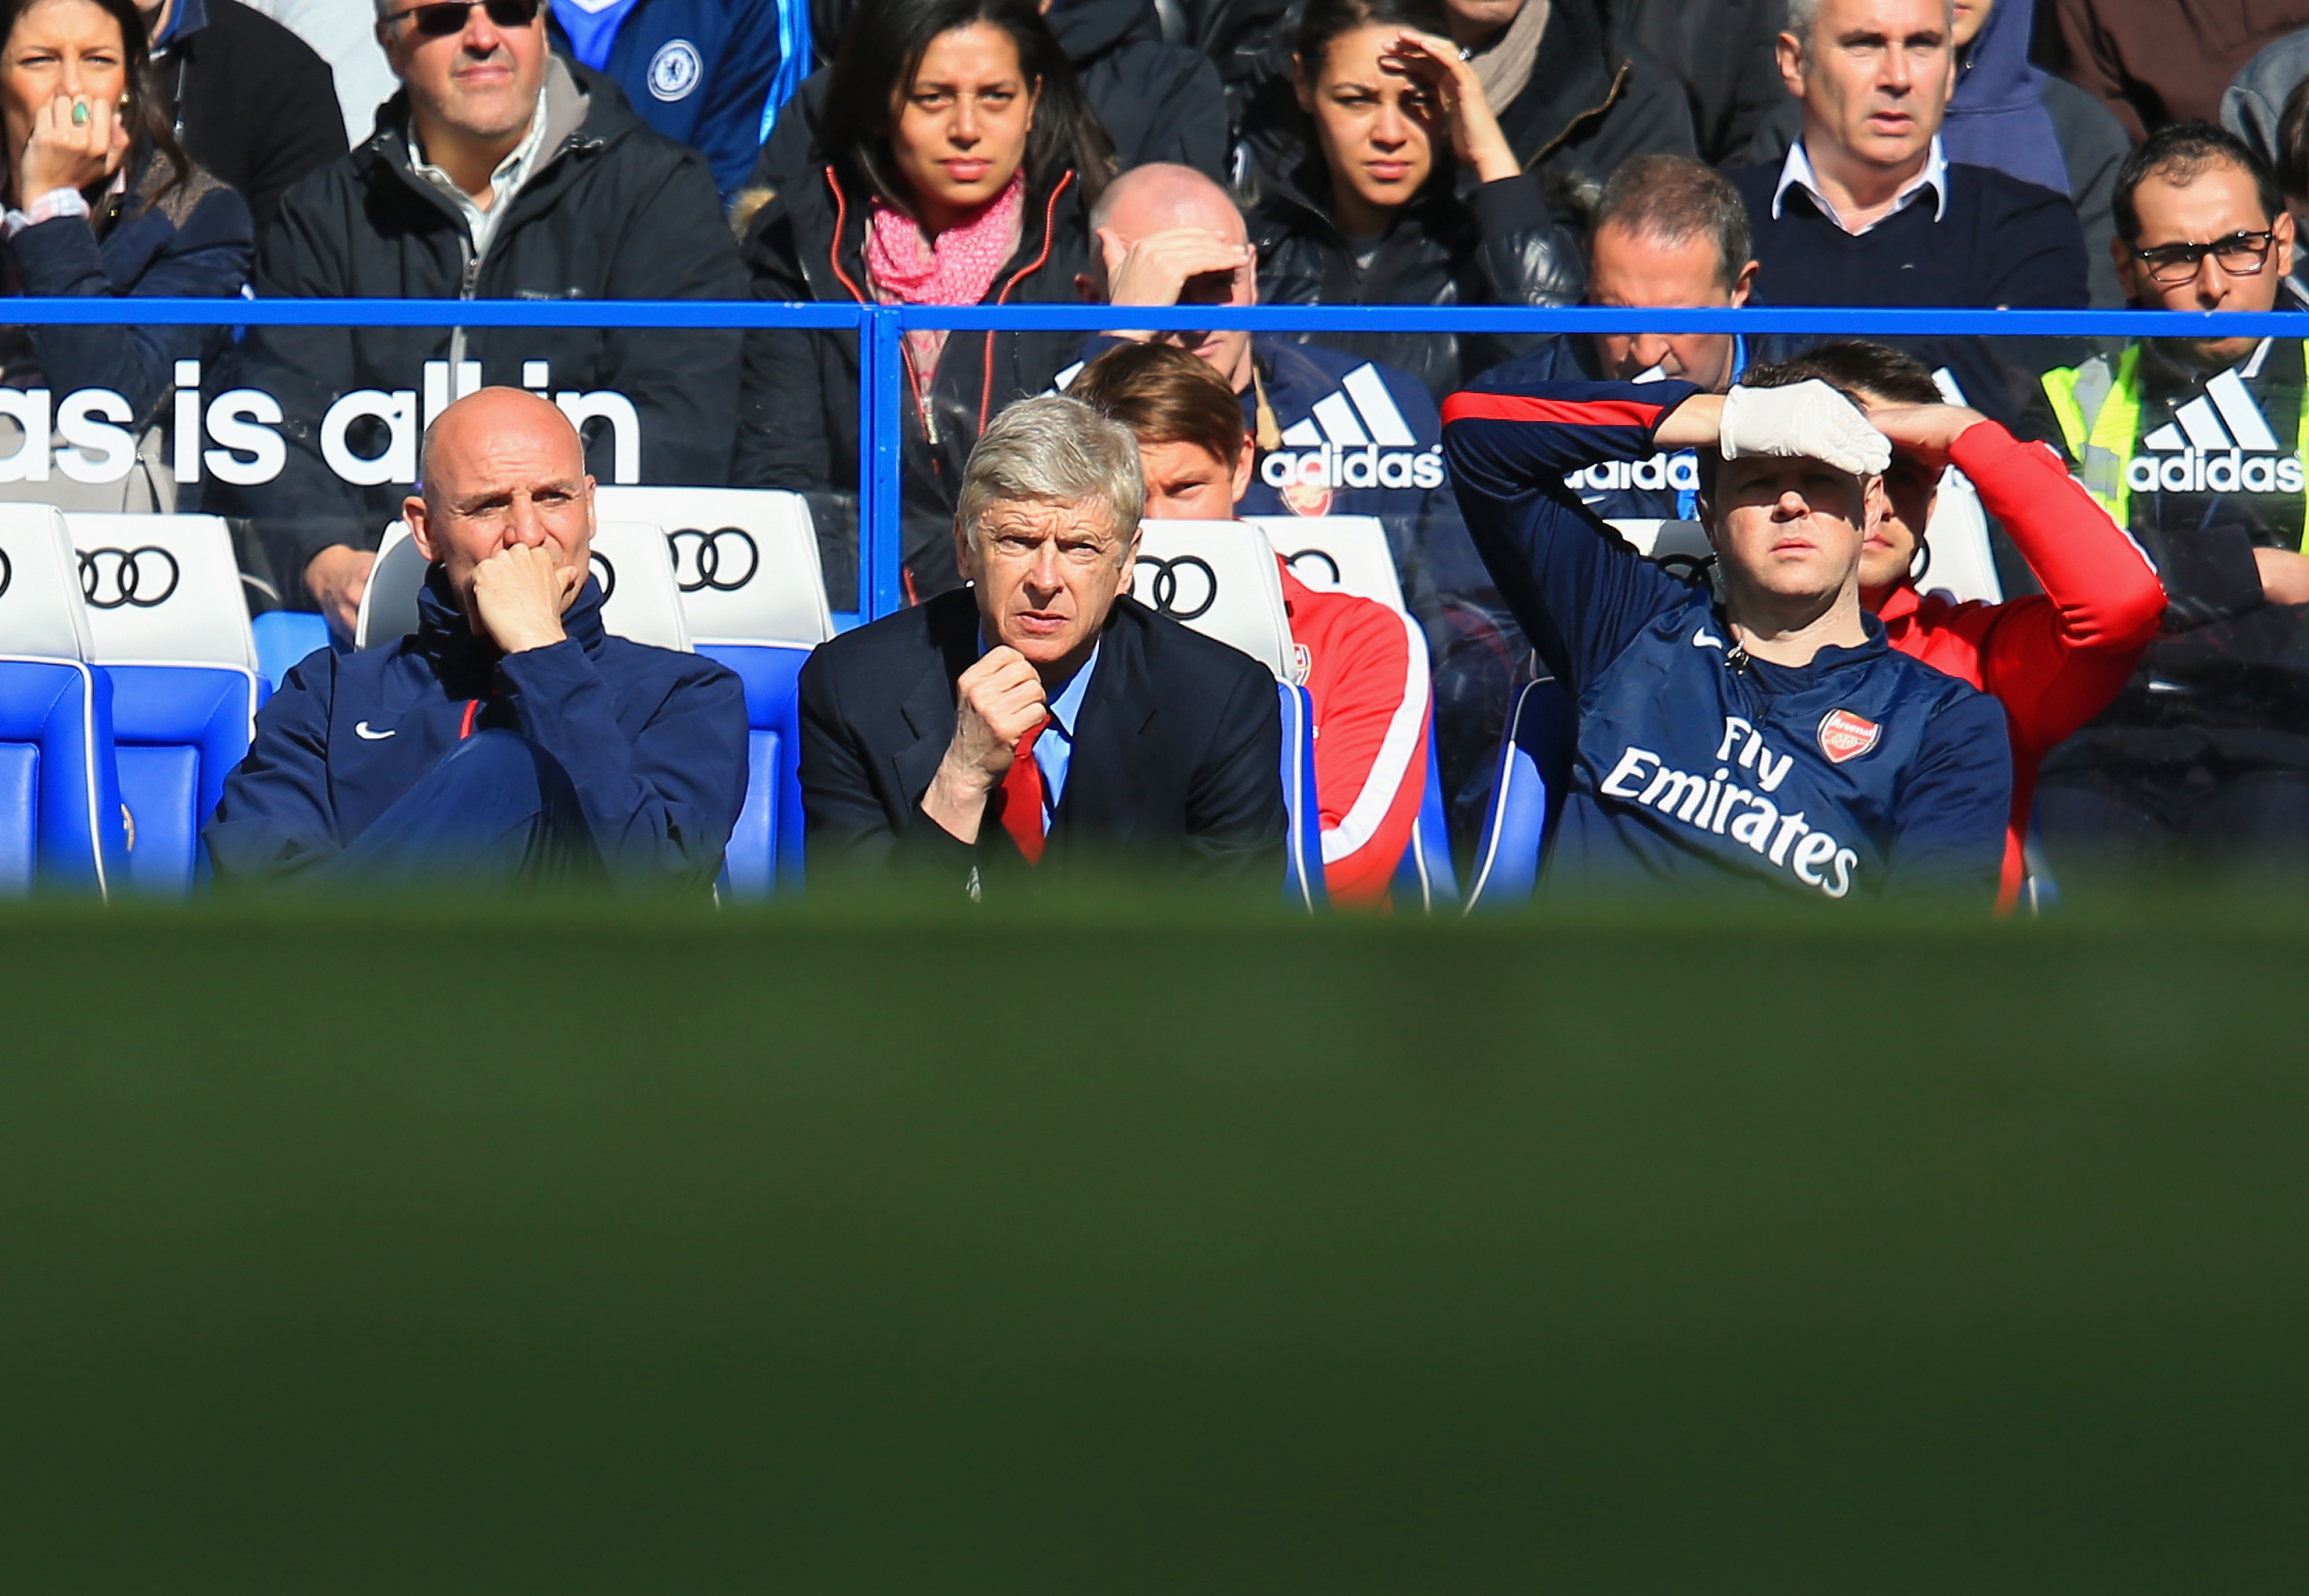 LONDON, ENGLAND - MARCH 22:  Arsene Wenger manager of Arsenal looks on during the Barclays Premier League match between Chelsea and Arsenal at Stamford Bridge on March 22, 2014 in London, England.  (Photo by Richard Heathcote/Getty Images)